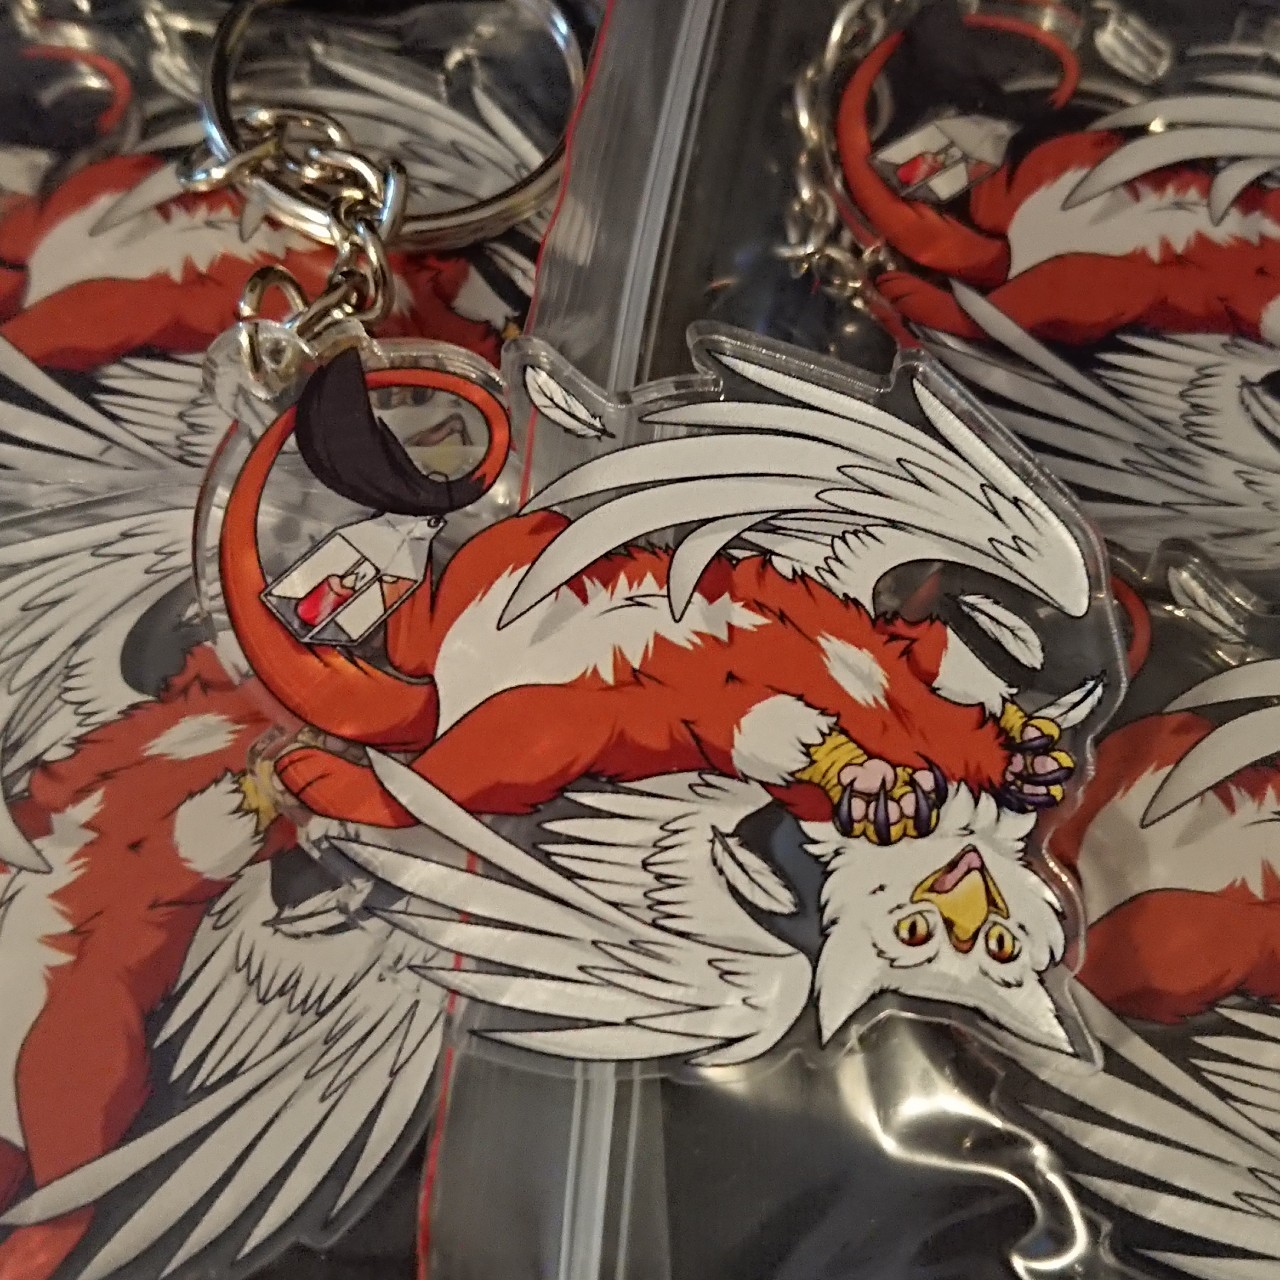 Product Image 1 - Large gryphon keychain.  #gryphon #griffen #keychain